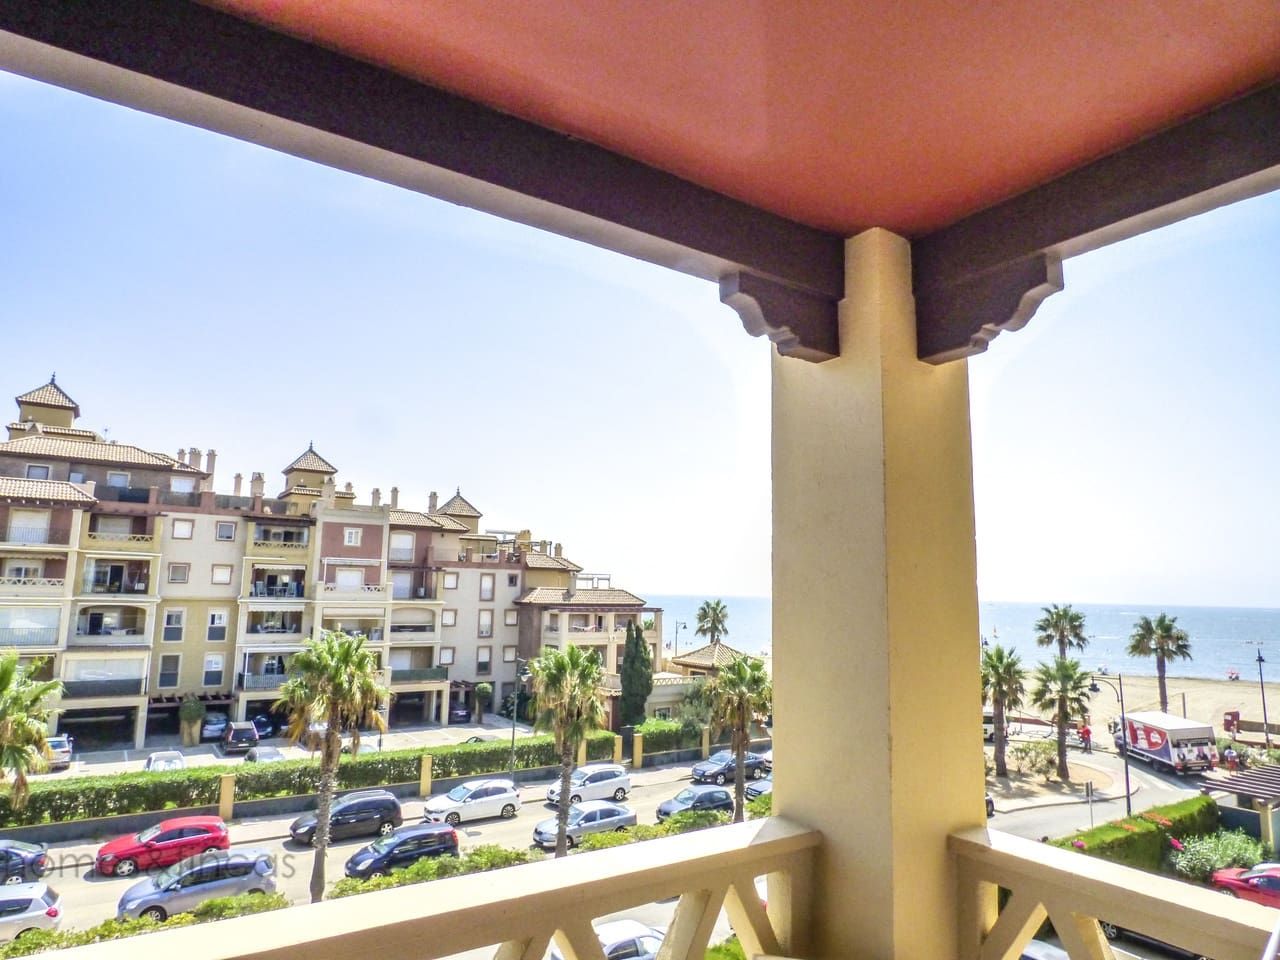 1 bedroom Apartment for sale in Isla Canela with garage - € 109,000 (Ref: 4672127)